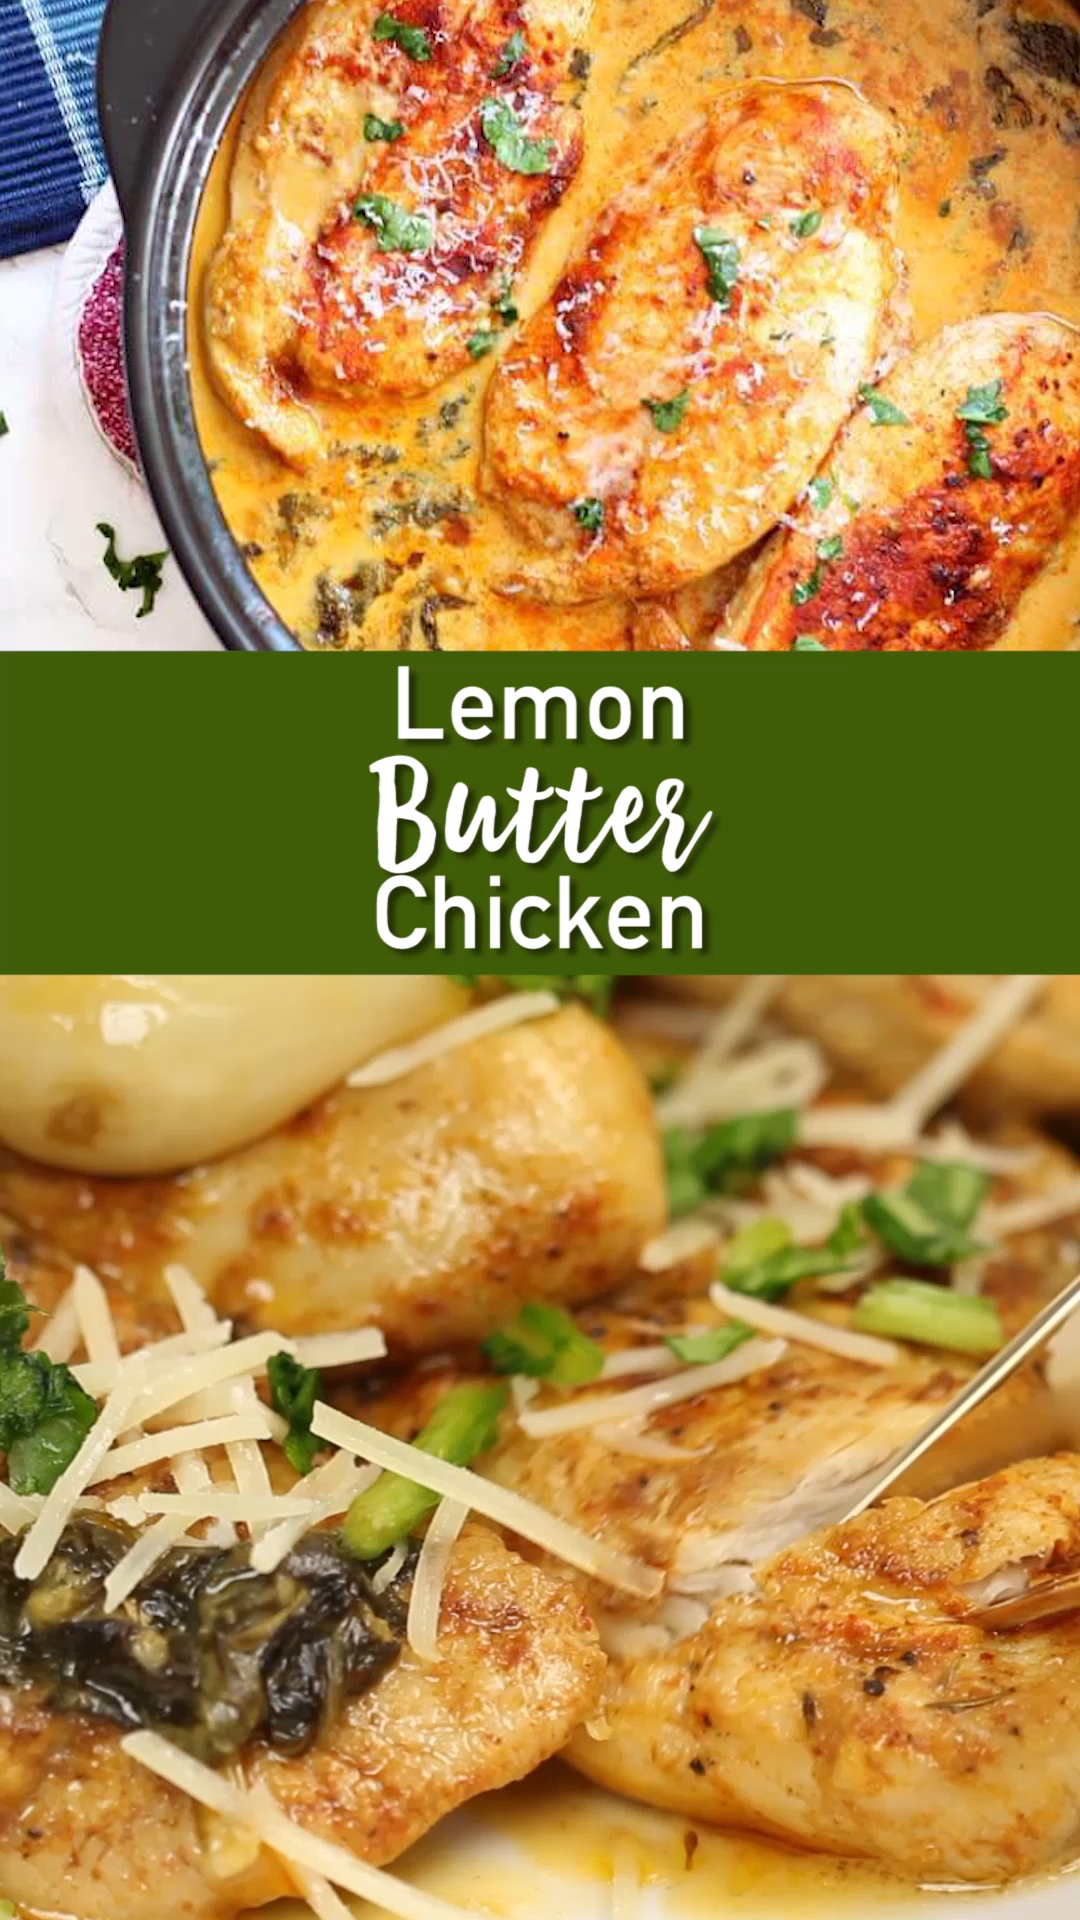 Photo of Lemon Butter Chicken